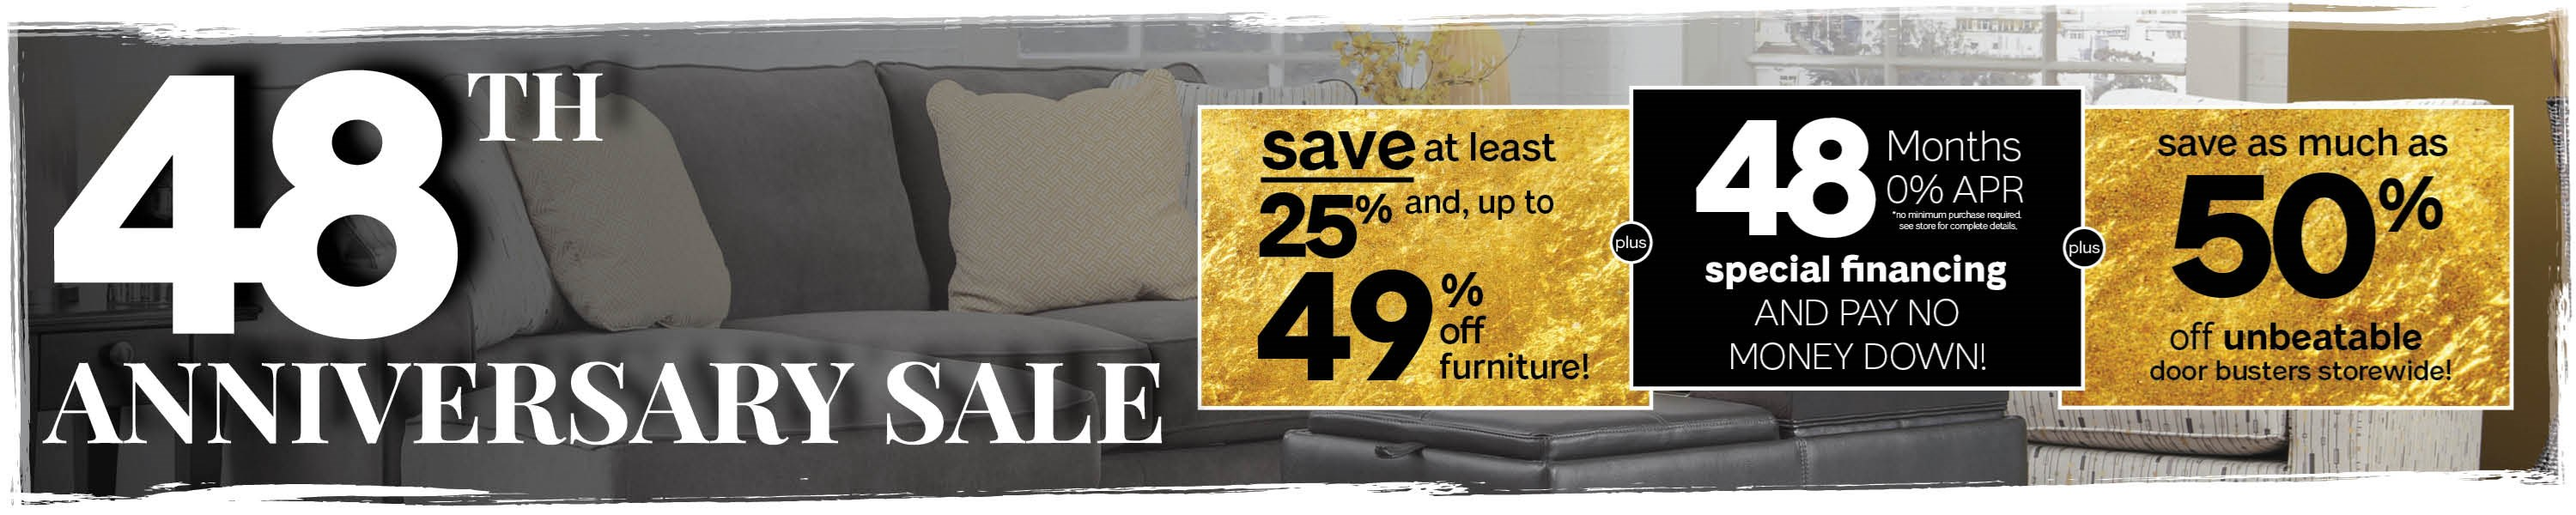 Furniture & ApplianceMart 48th Anniversary Sale